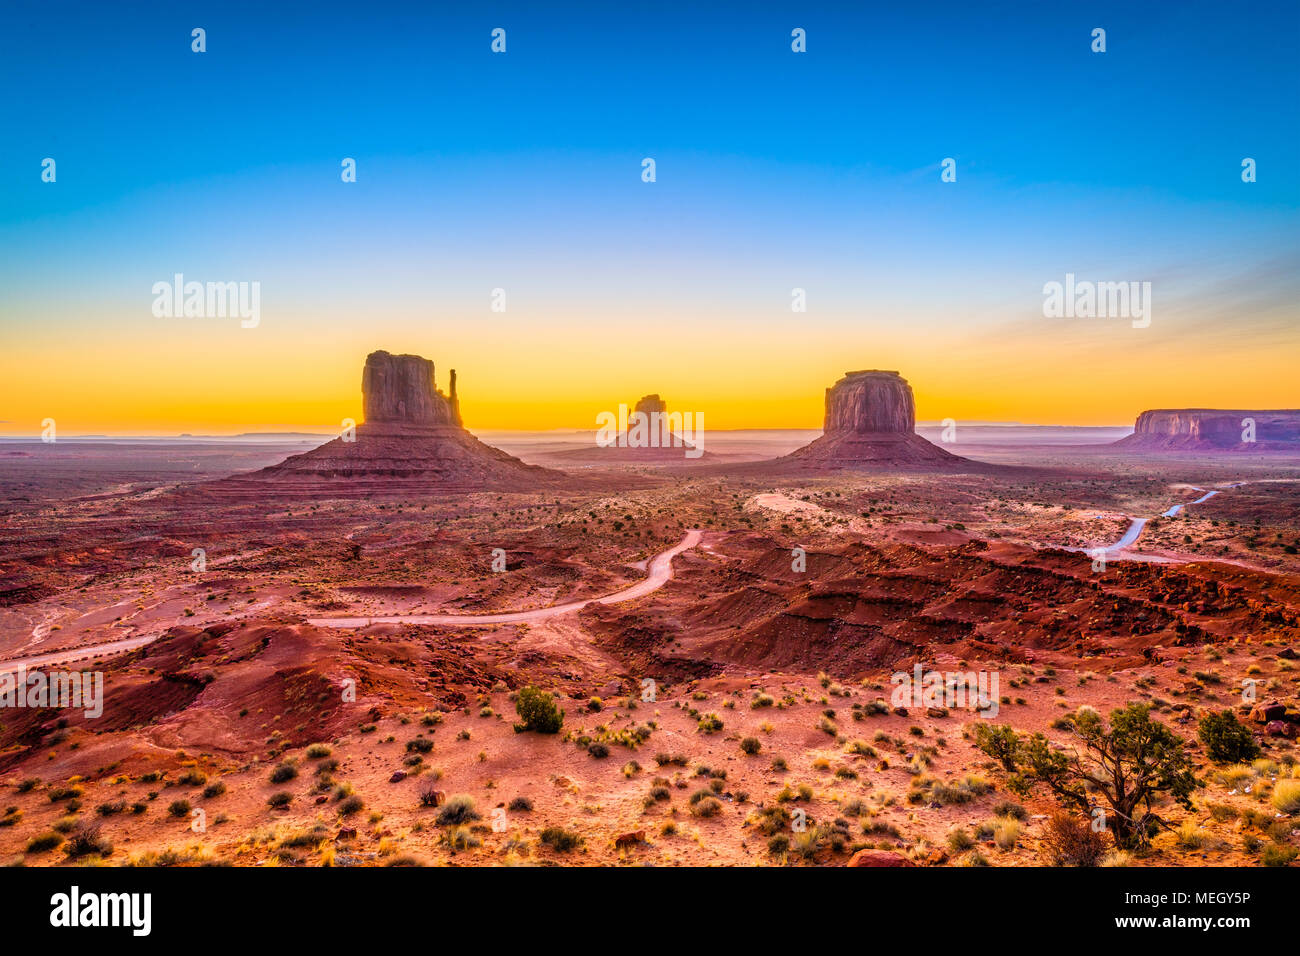 Monument Valley, Arizona, USA at dawn. - Stock Image